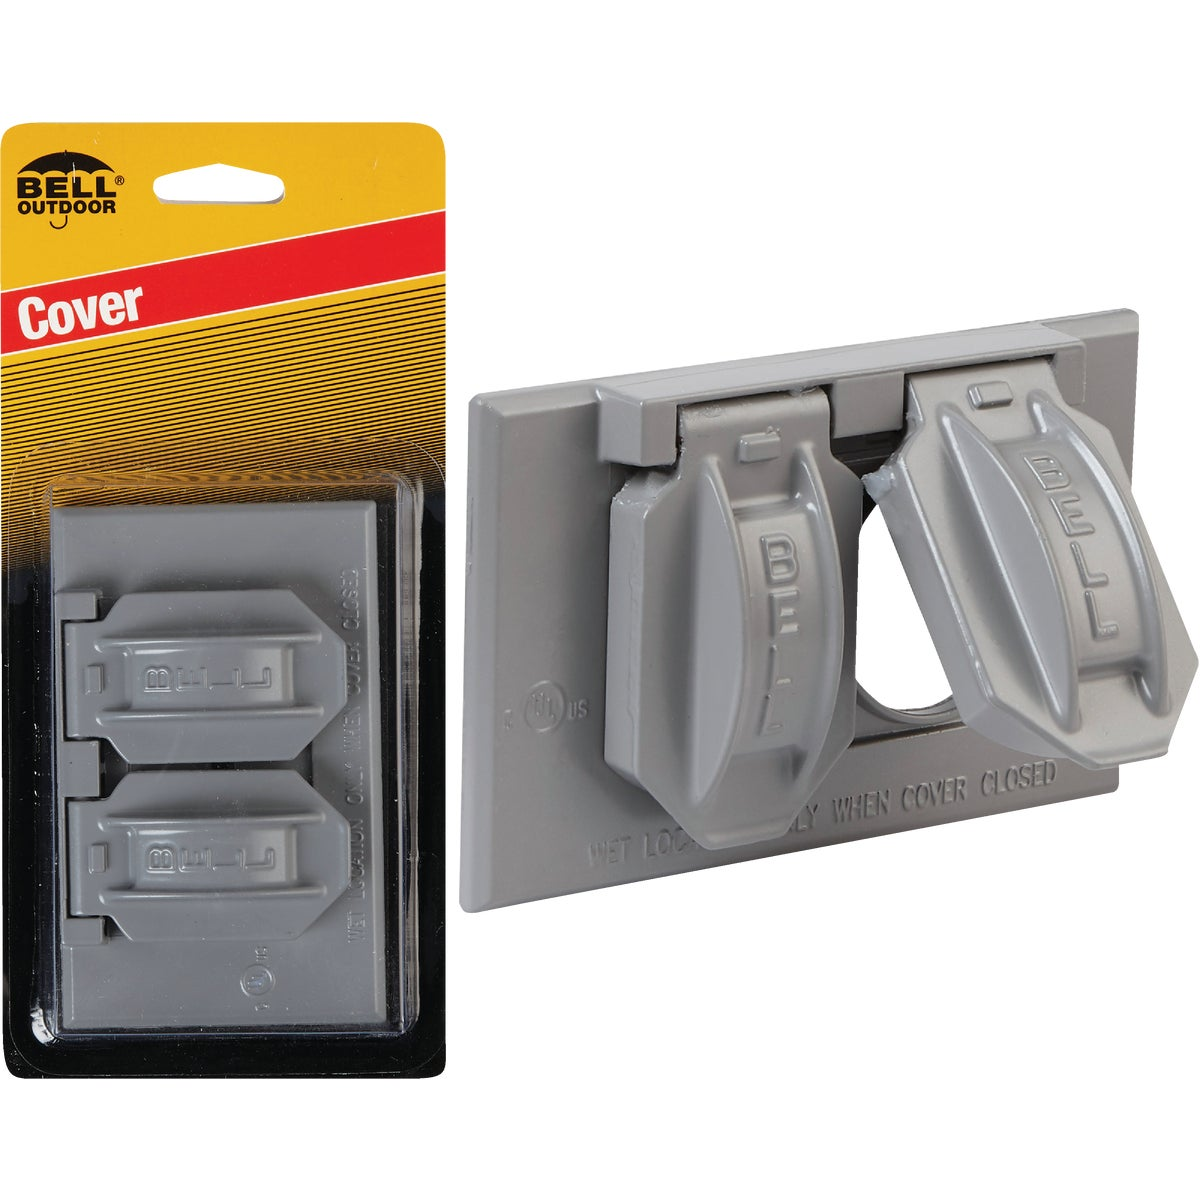 GRAY OUTDOR OUTLET COVER - 5942-1 by Hubbell